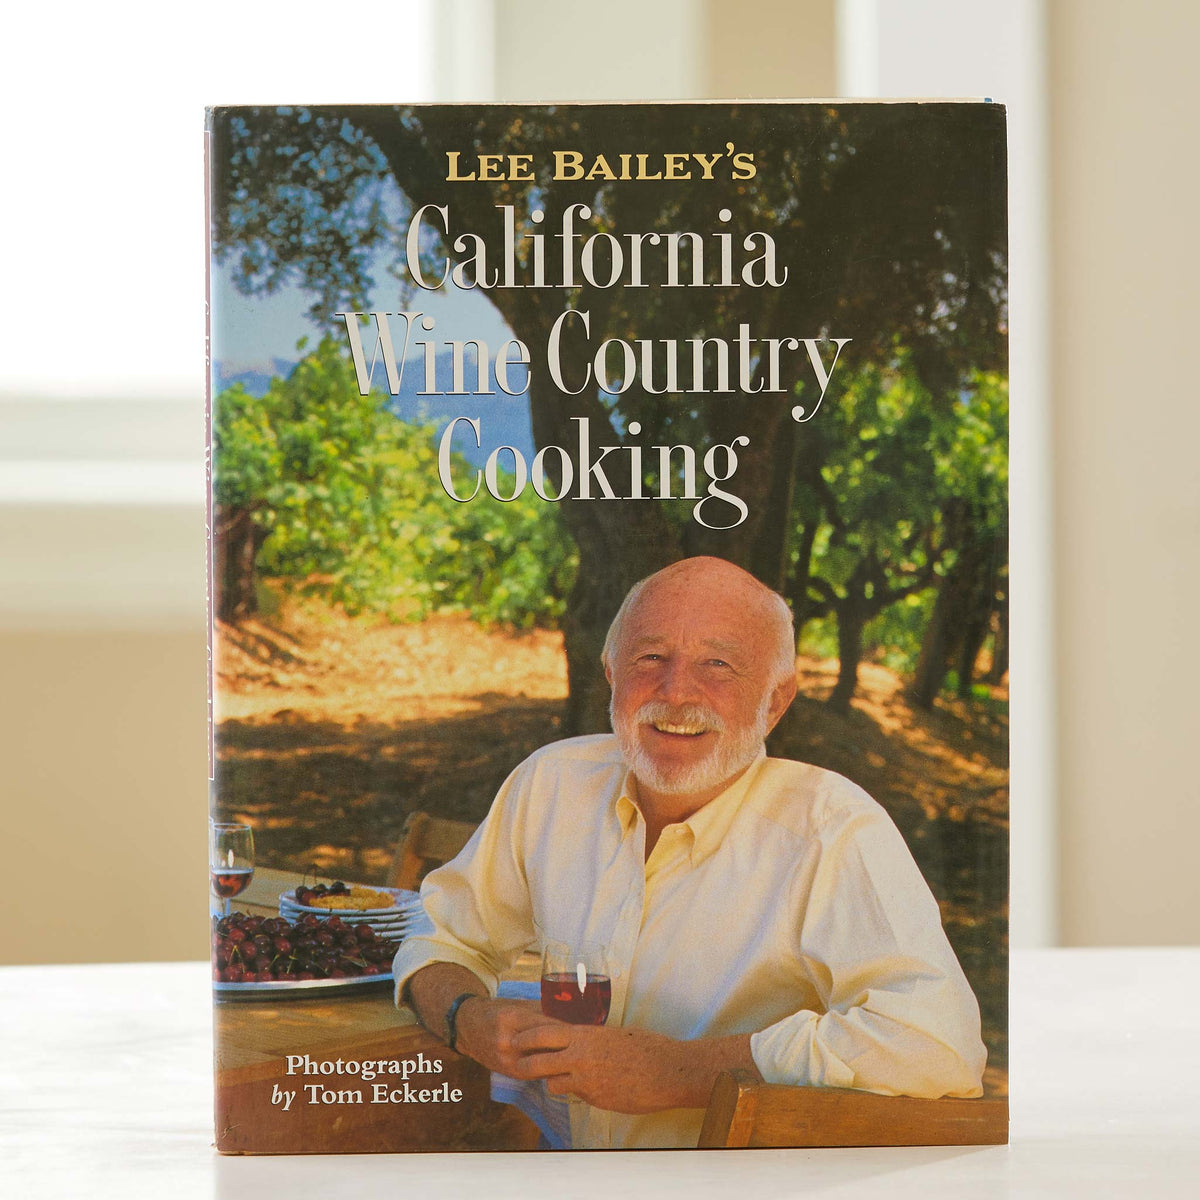 Lee Bailey's California Wine Country Cooking. A culinary tour of California's Wine Country. A unique vintage cookbook with treasured recipes.